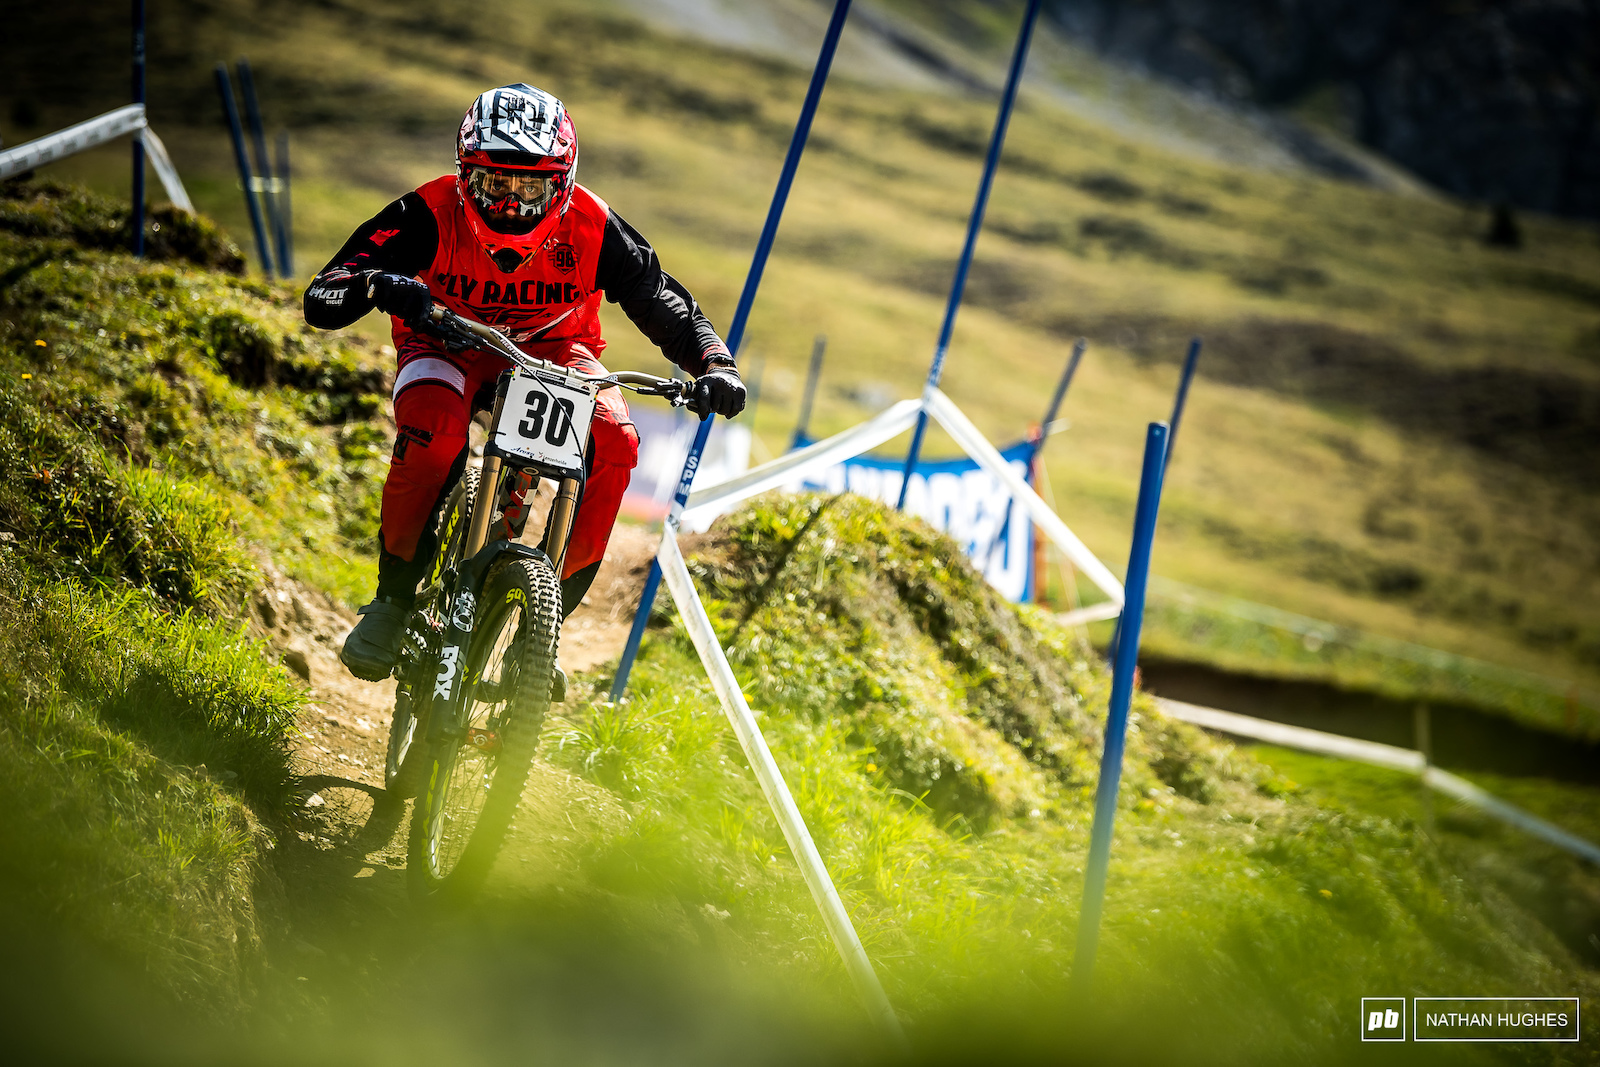 Eddie Masters is riding like a bit of a hero here in Switzerland look out for another not-so-shocking result.